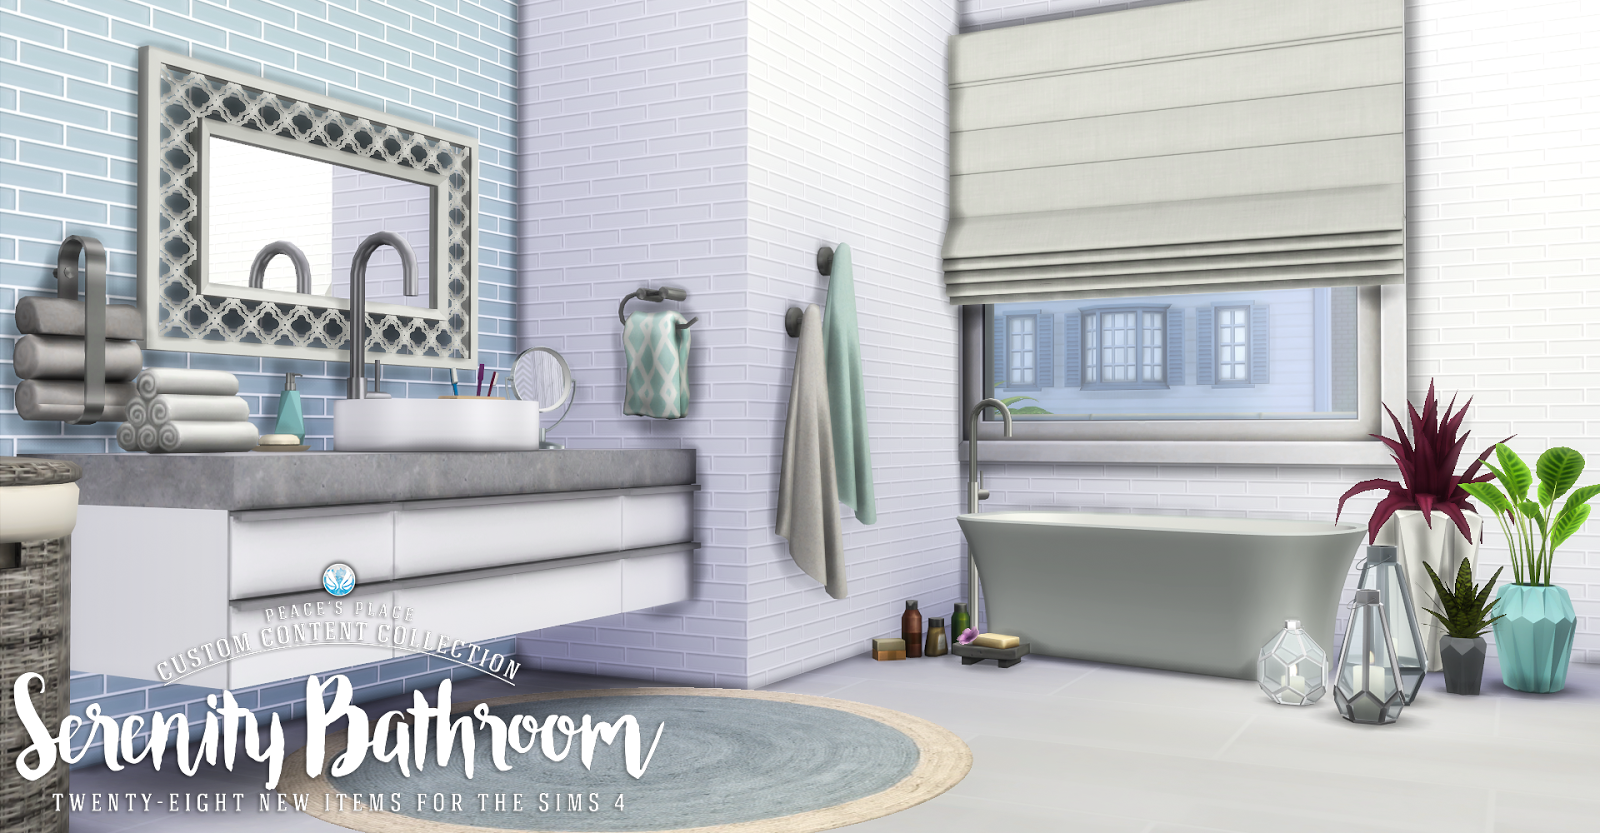 Sarah fernandez the number of bathrooms in a home can really make or break the home's overall functionality for its inhabitants. The Sims 4 | Simsational Designs: Serenity Bathroom Set ...